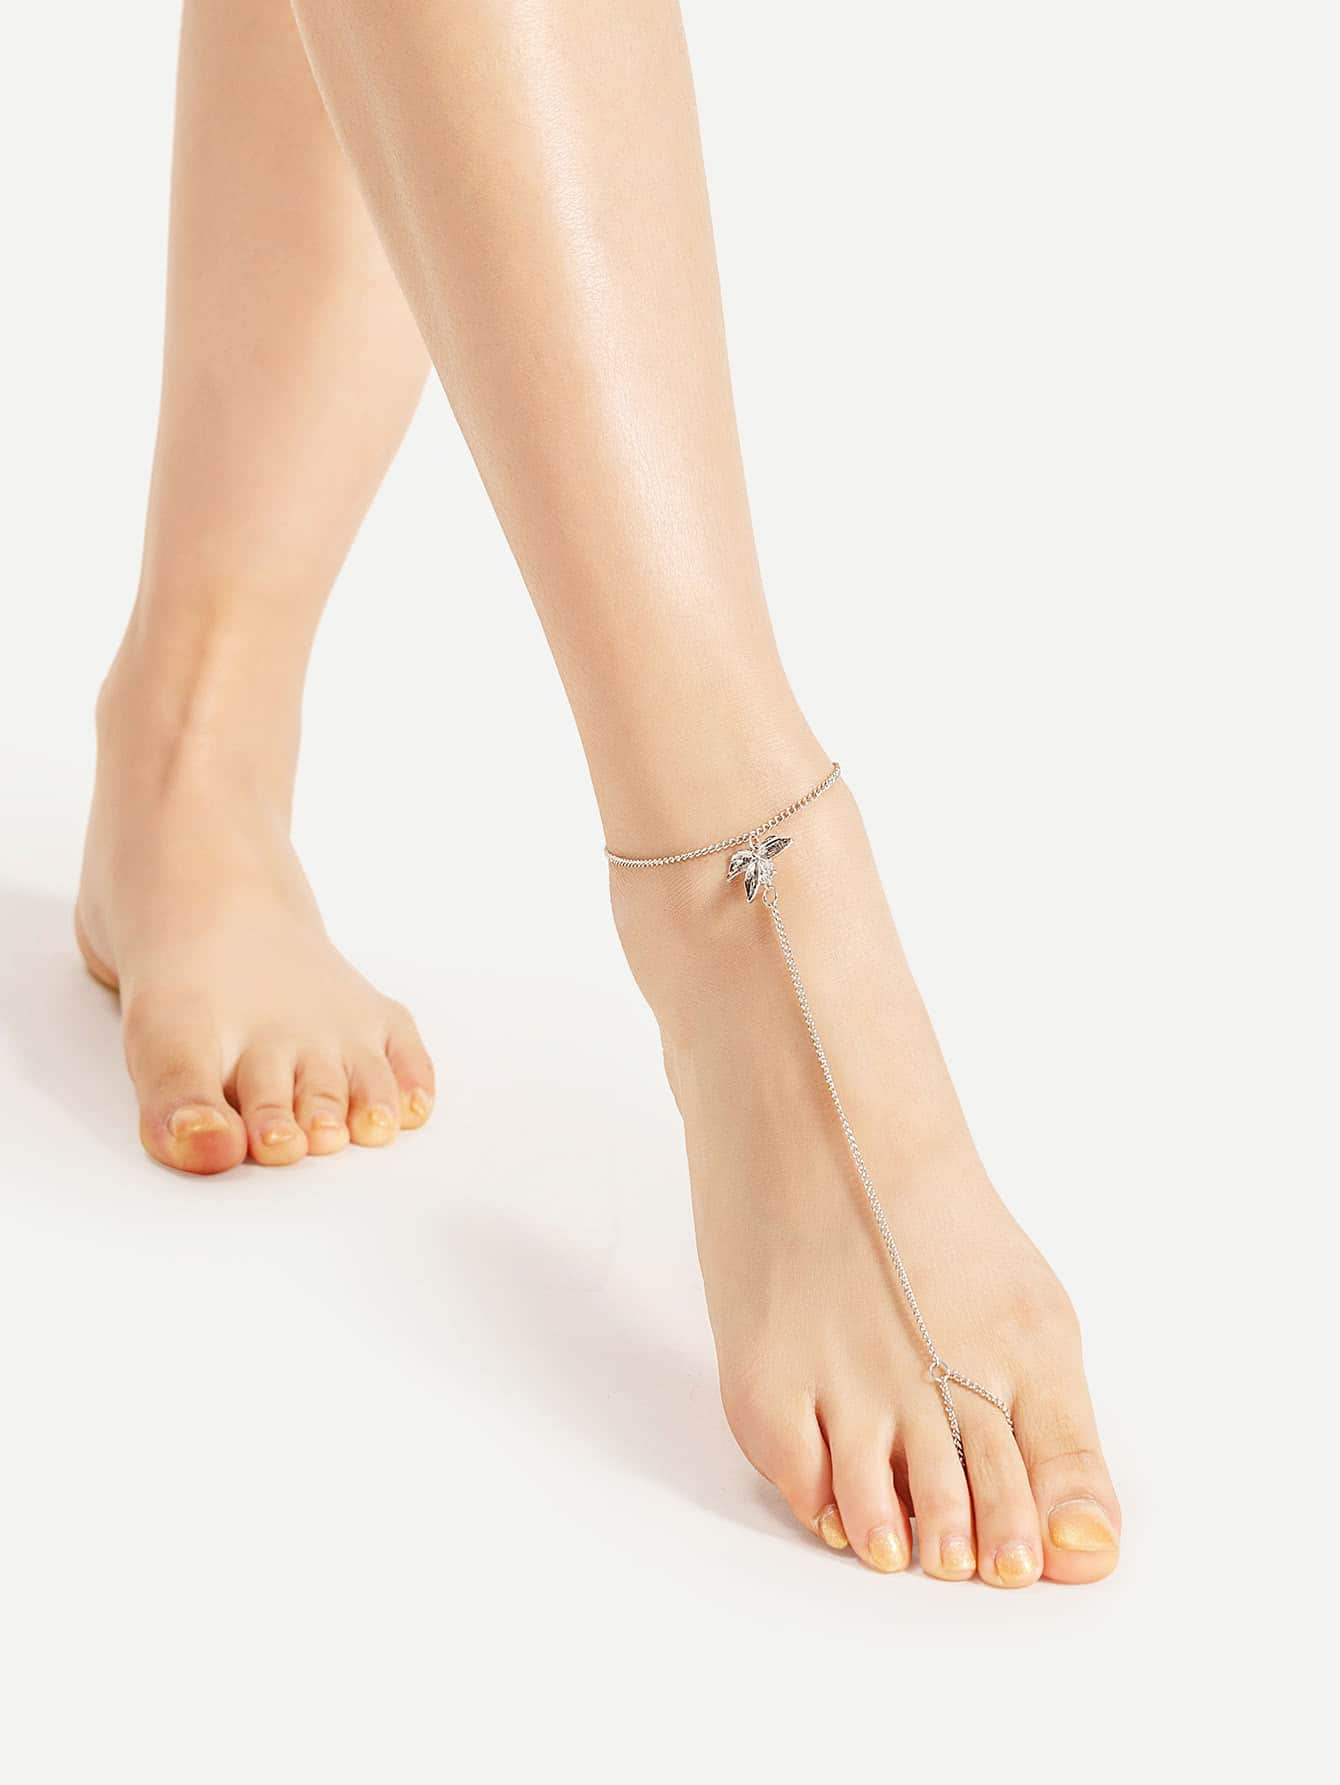 Metal Flower Detail Anklet With Toe Ring body170524301